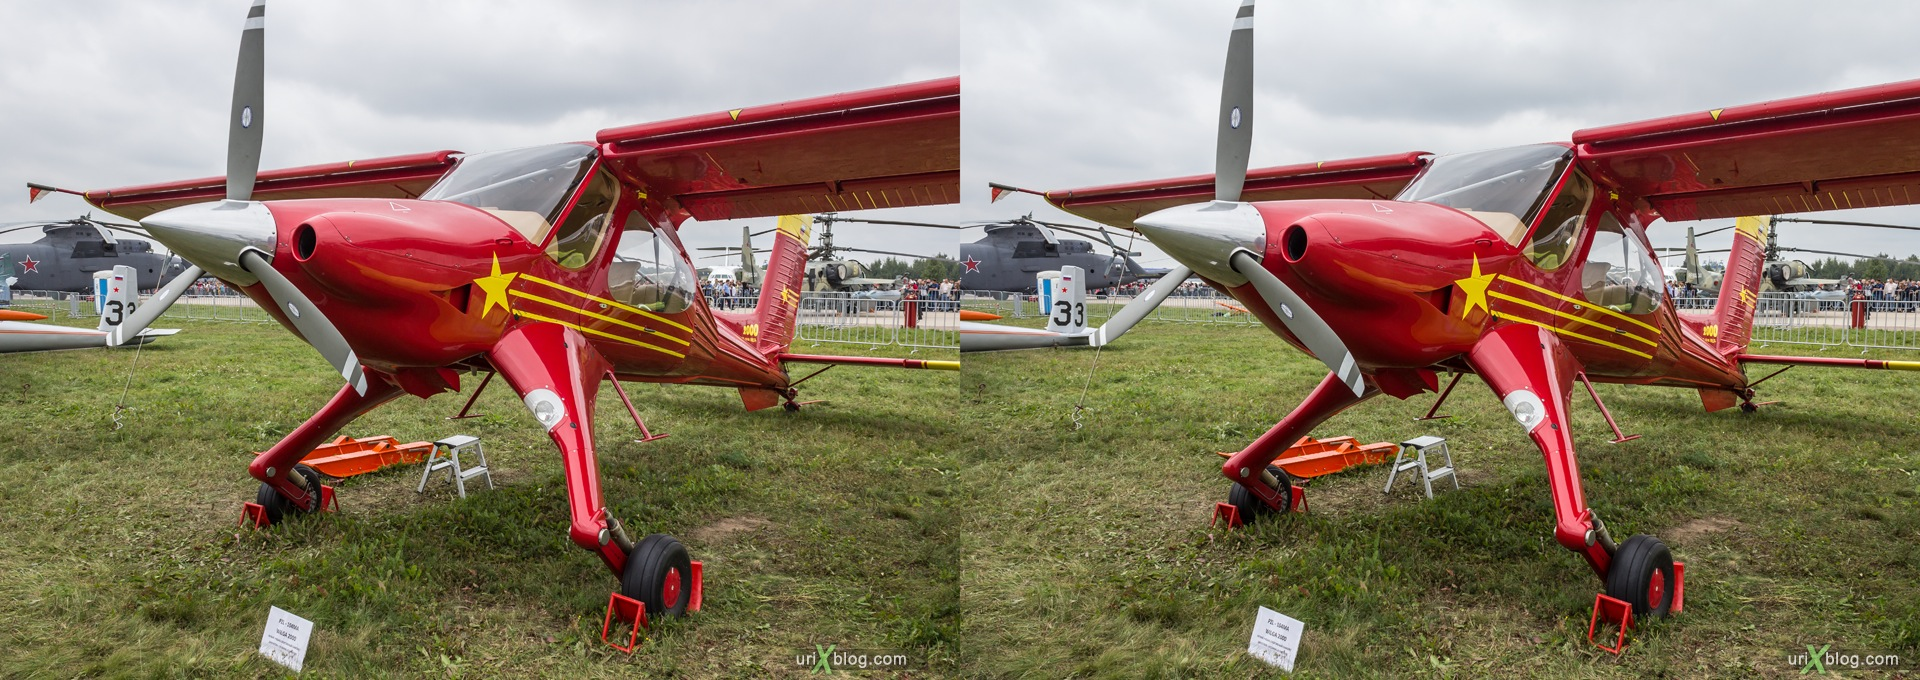 2013, PZL-104MA Wilga 2000, MAKS, International Aviation and Space Salon, Russia, Ramenskoye airfield, airplane, 3D, stereo pair, cross-eyed, crossview, cross view stereo pair, stereoscopic